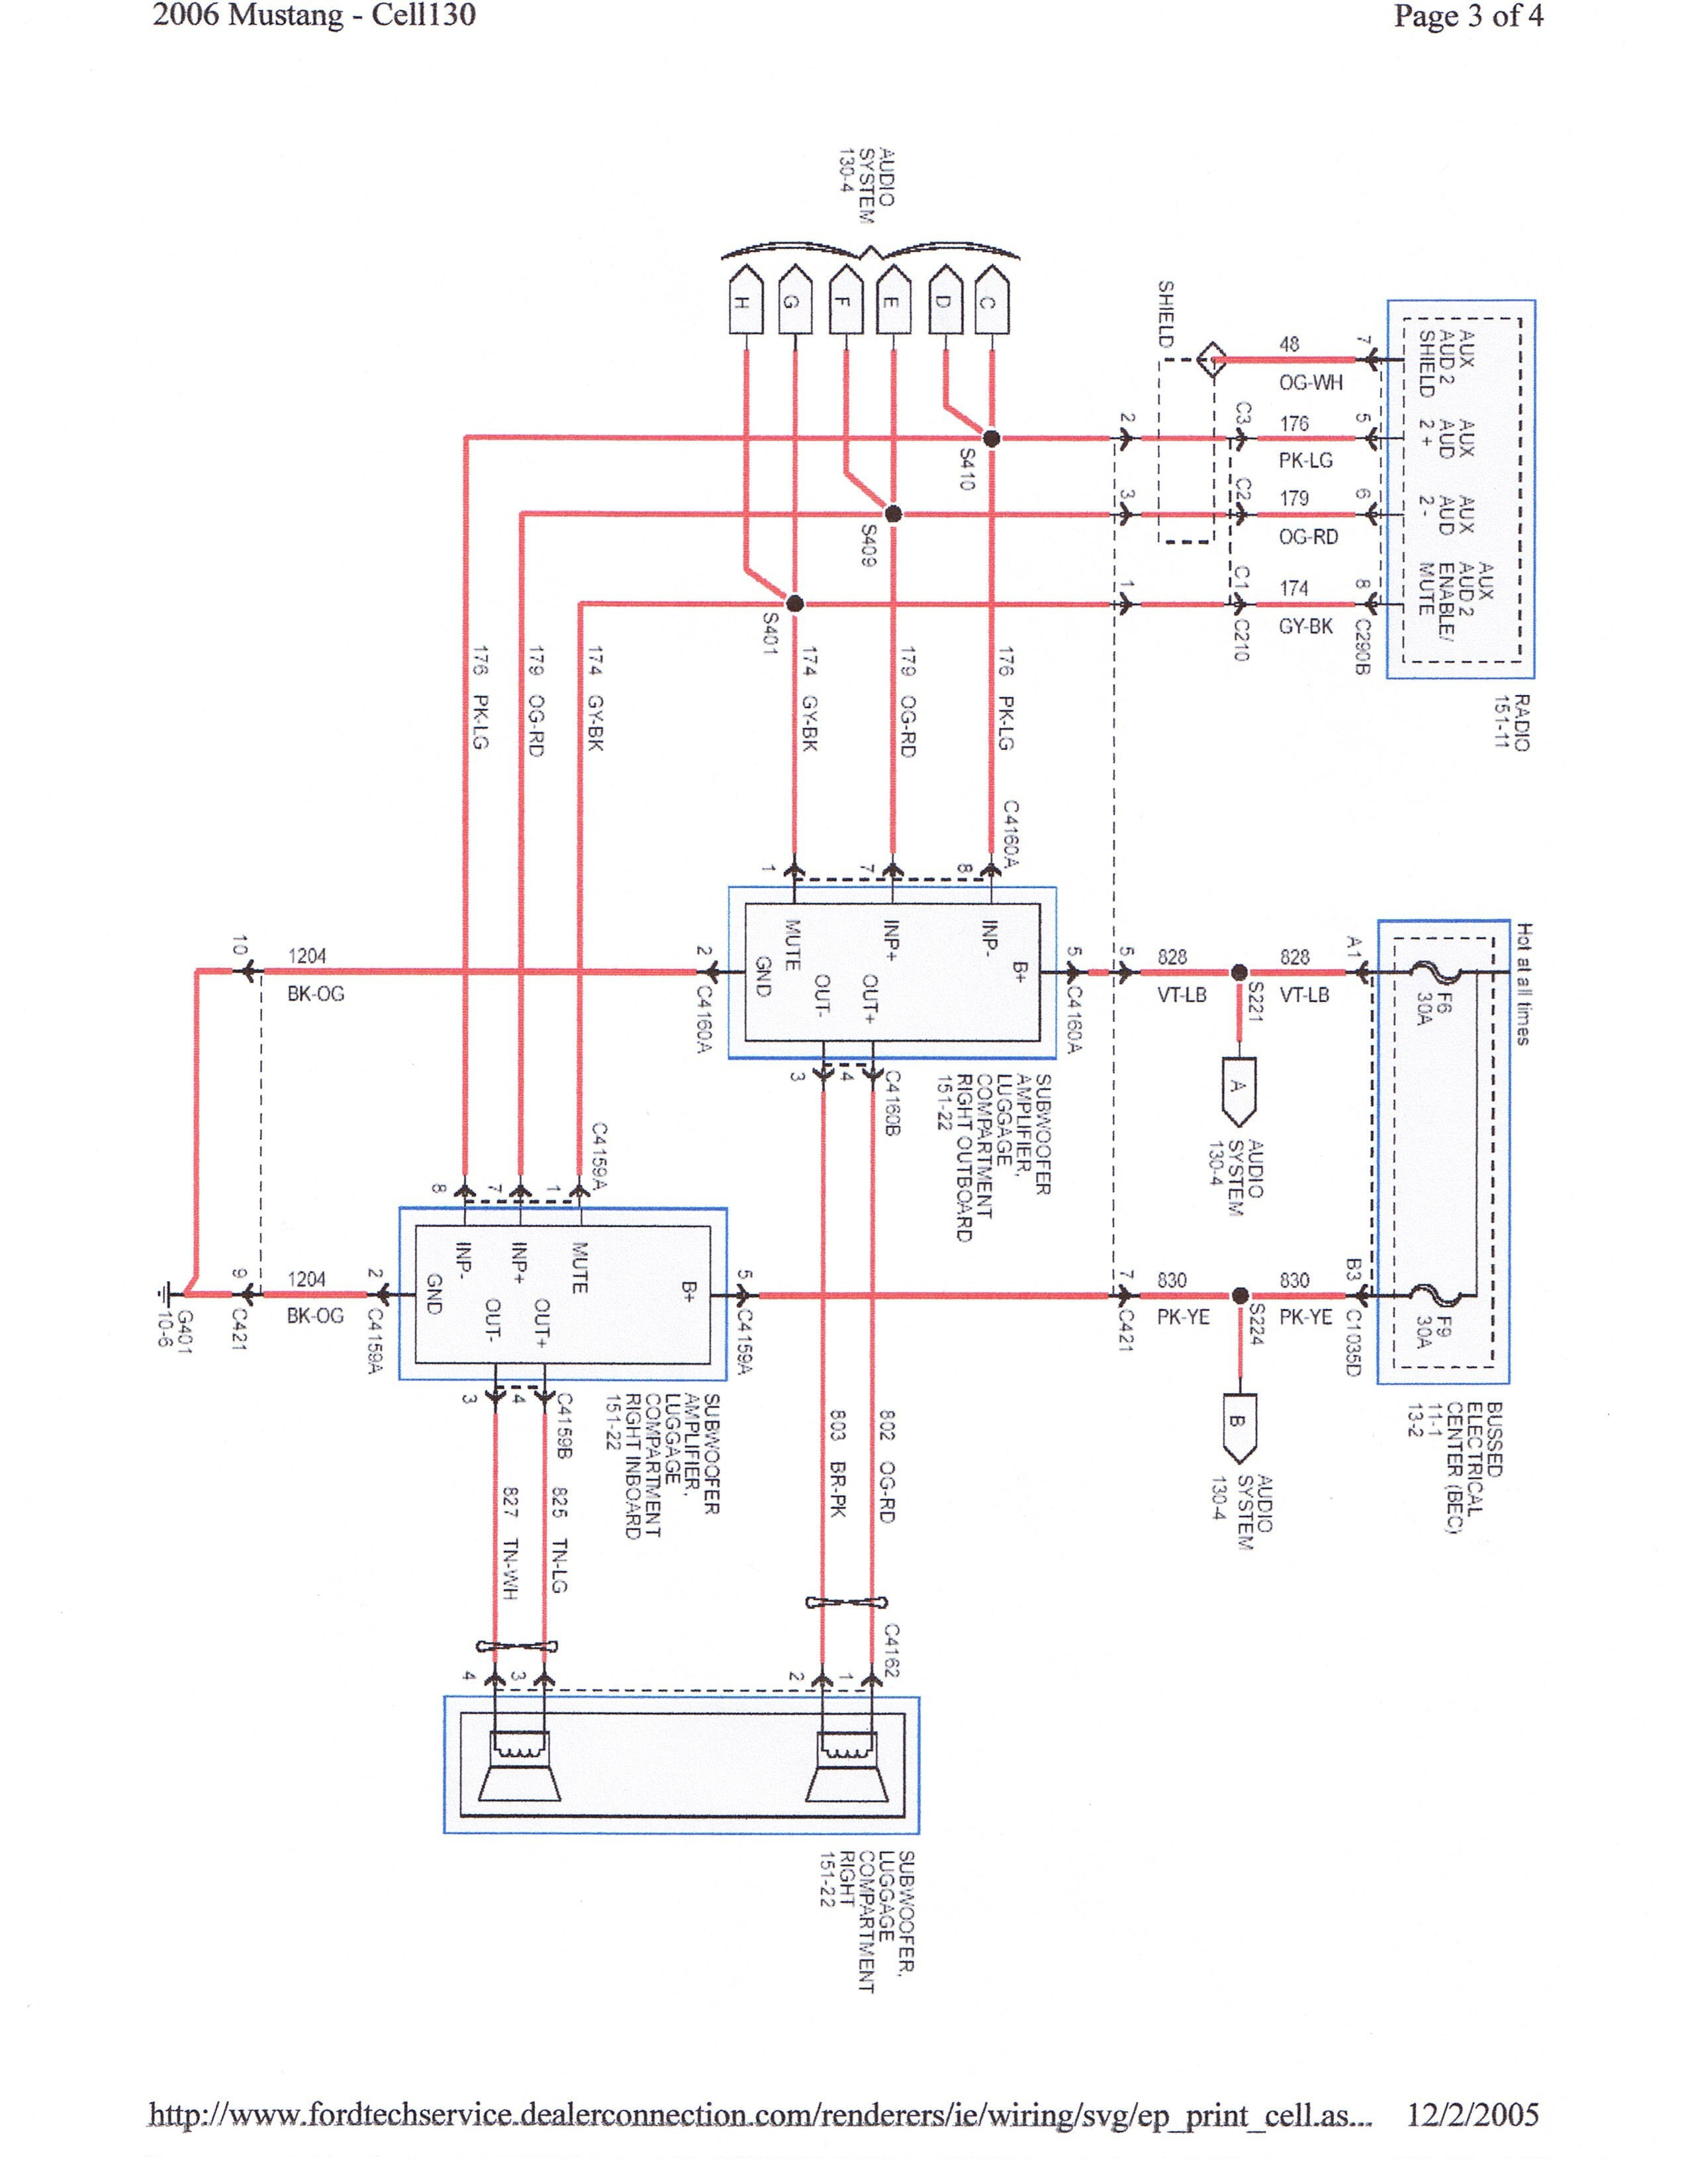 1999 Mercury Sable Engine Diagram 2013 Cougar Wiring Diagram Another Wiring Diagrams • Of 1999 Mercury Sable Engine Diagram